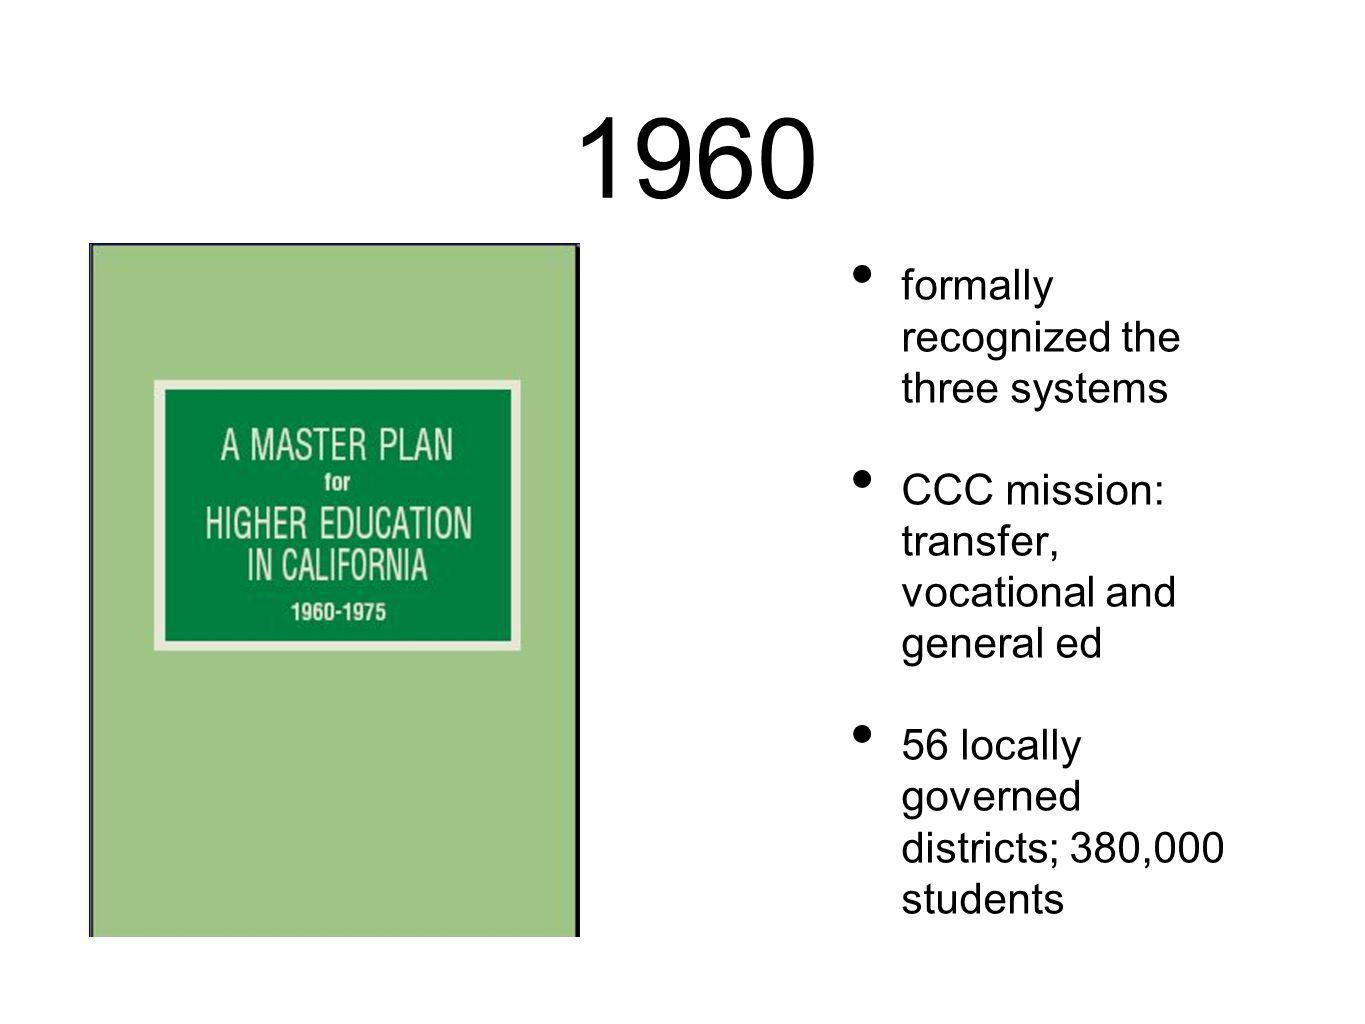 1960 formally recognized the three systems CCC mission: transfer, vocational and general ed 56 locally governed districts; 380,000 students